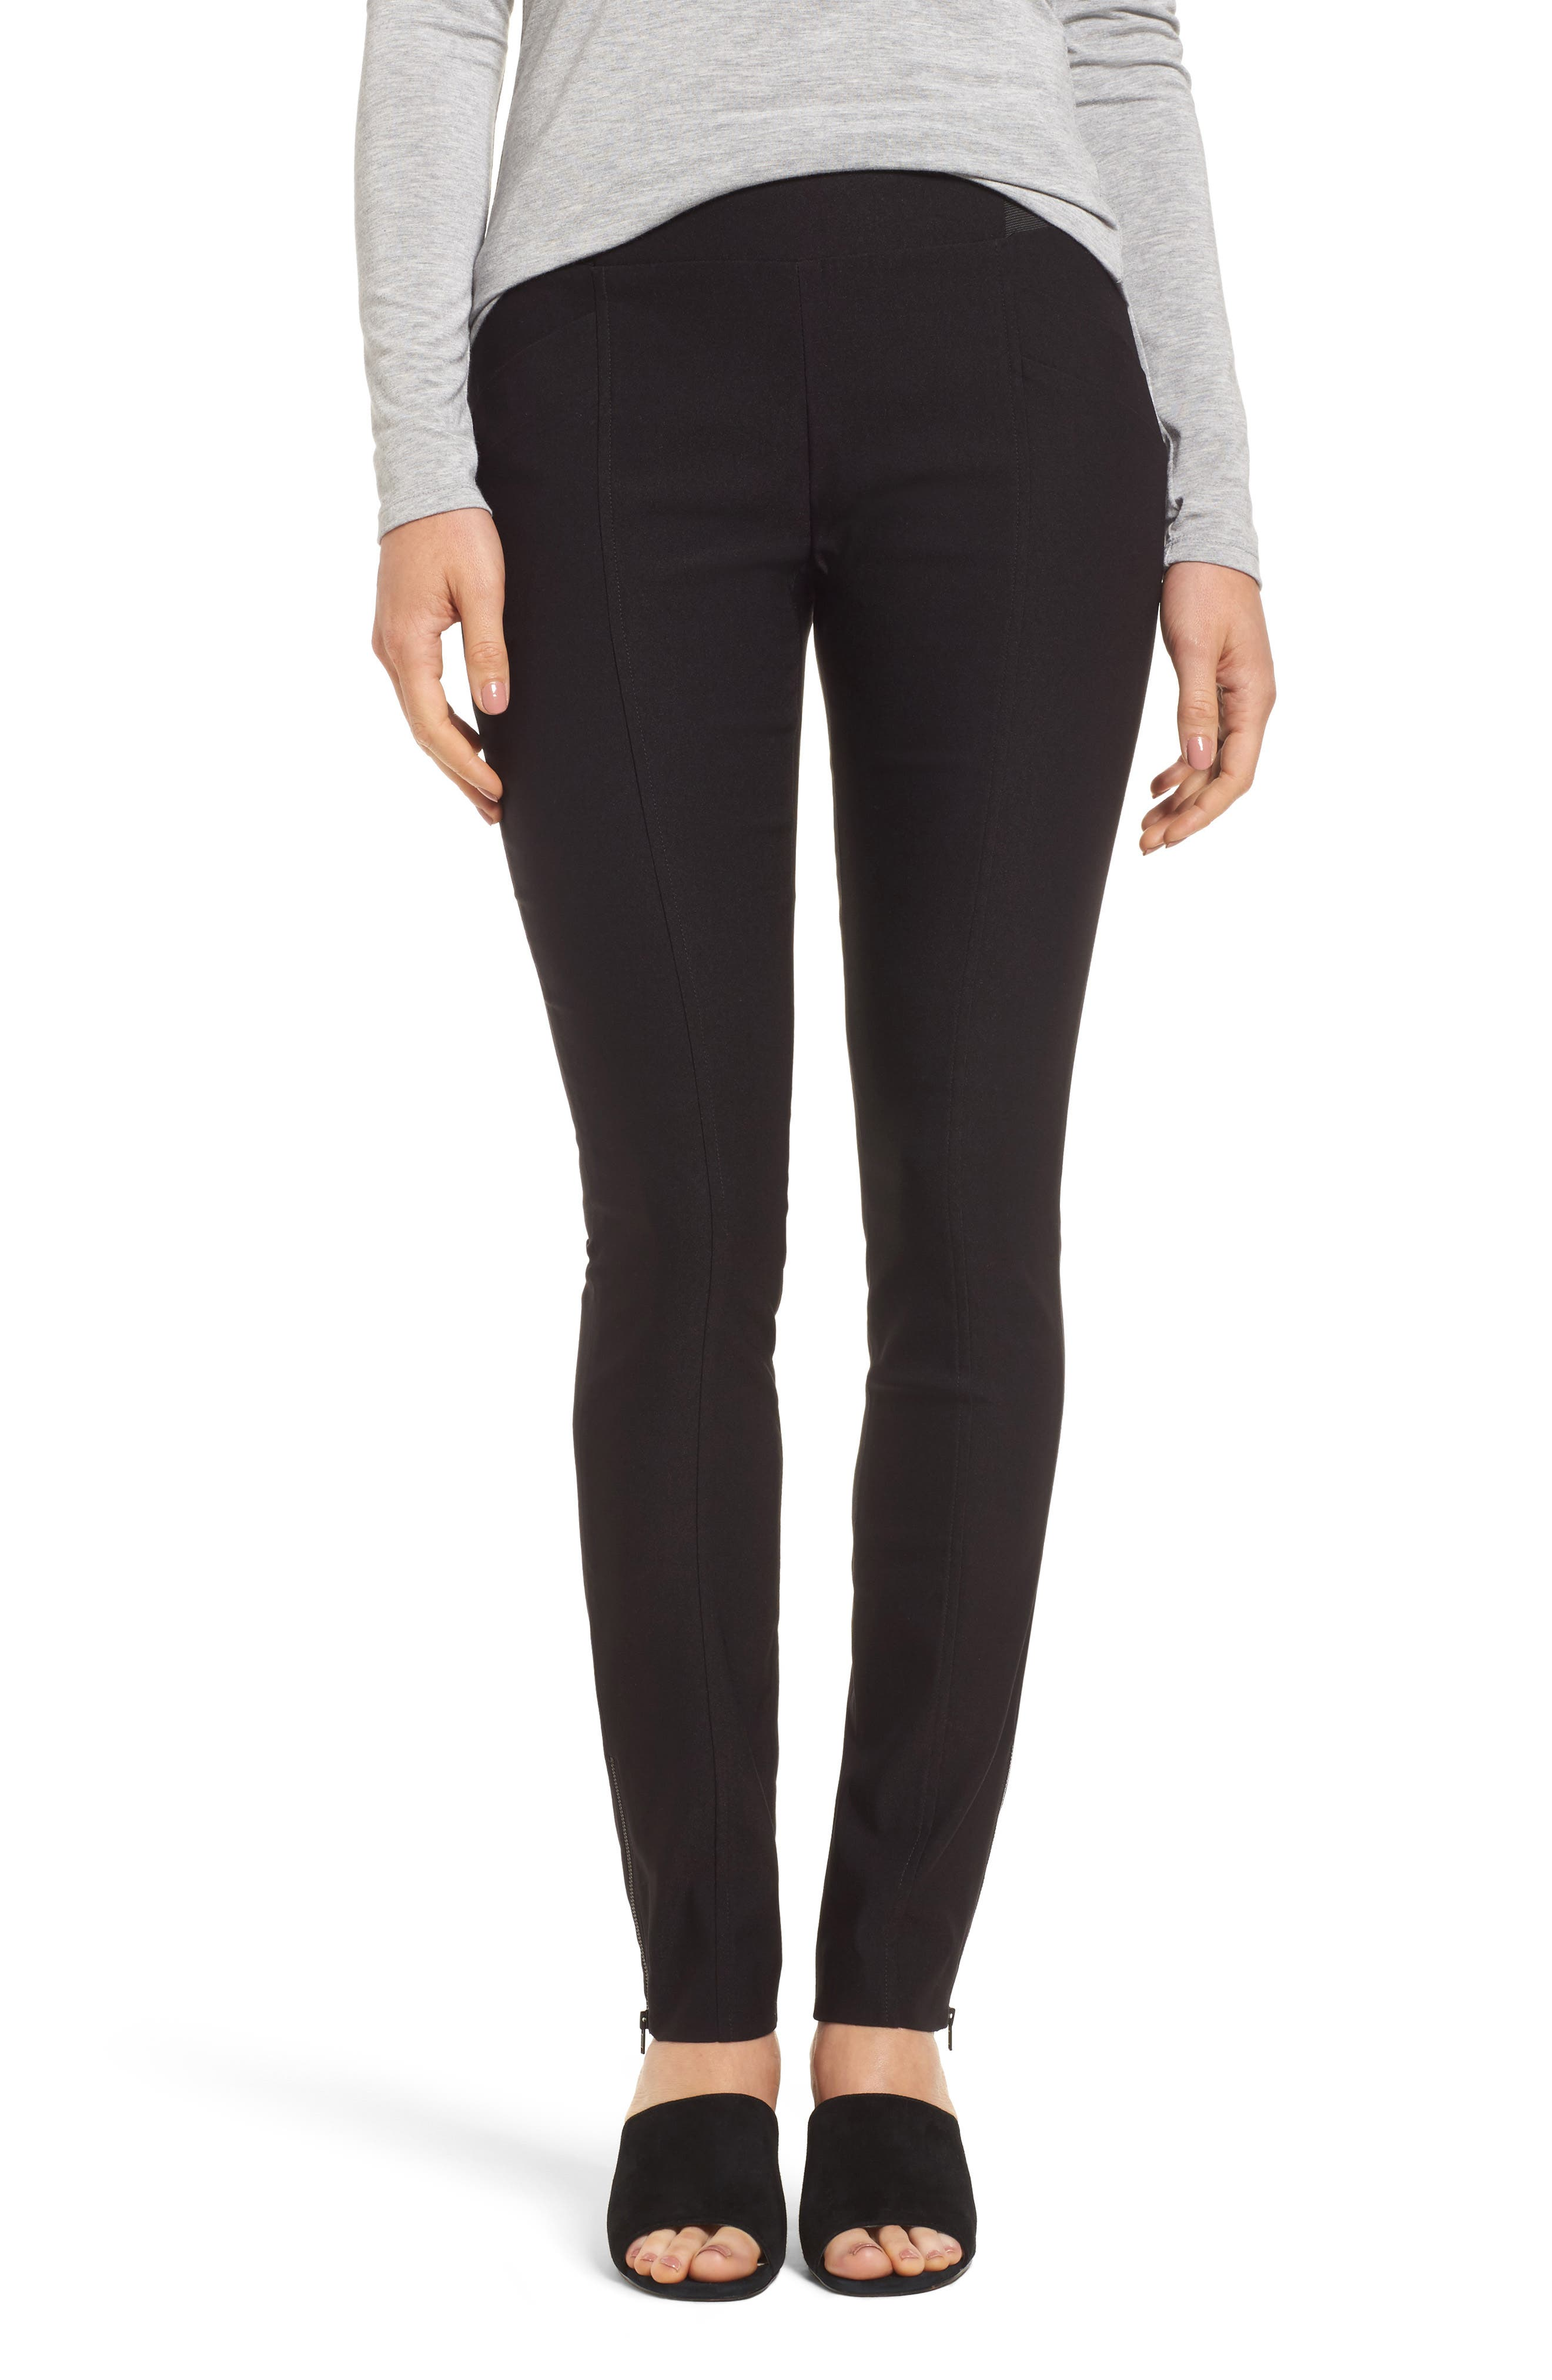 Main Image - NIC+ZOE Zip Ankle Wonder Stretch Pants